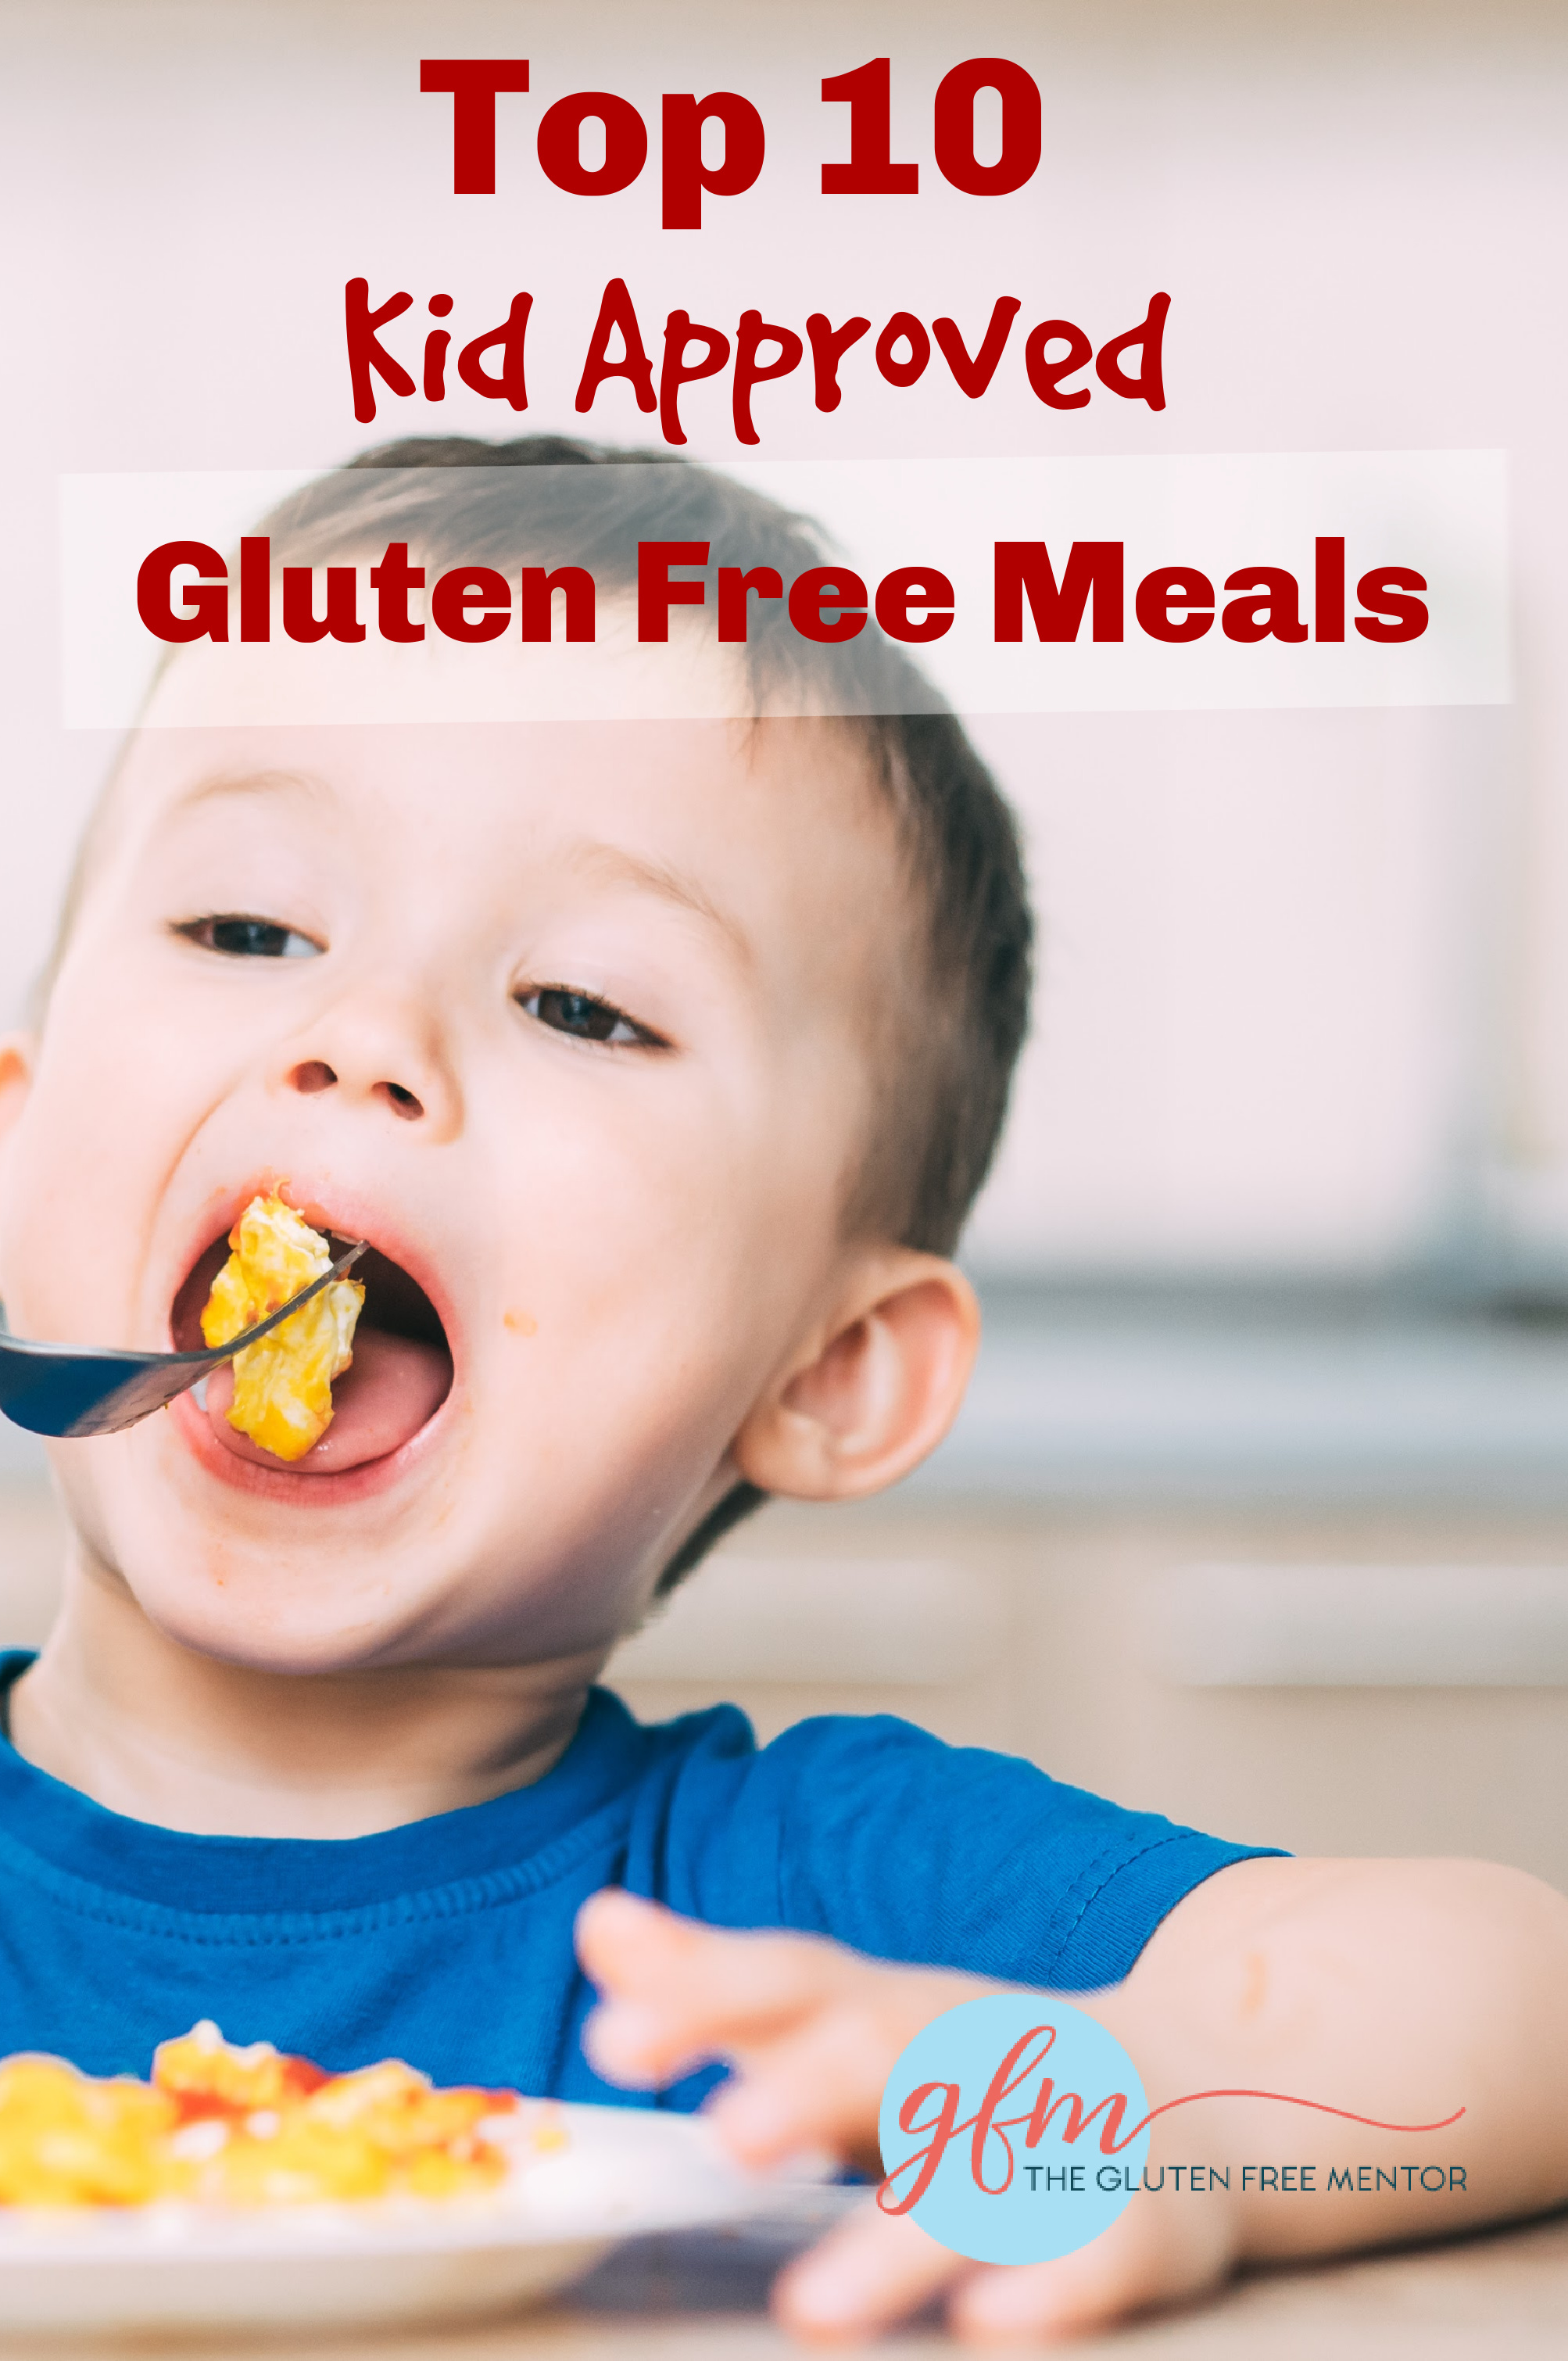 Pin Top 10 Kid-Approved Gluten Free Meals to your Pinterest Account